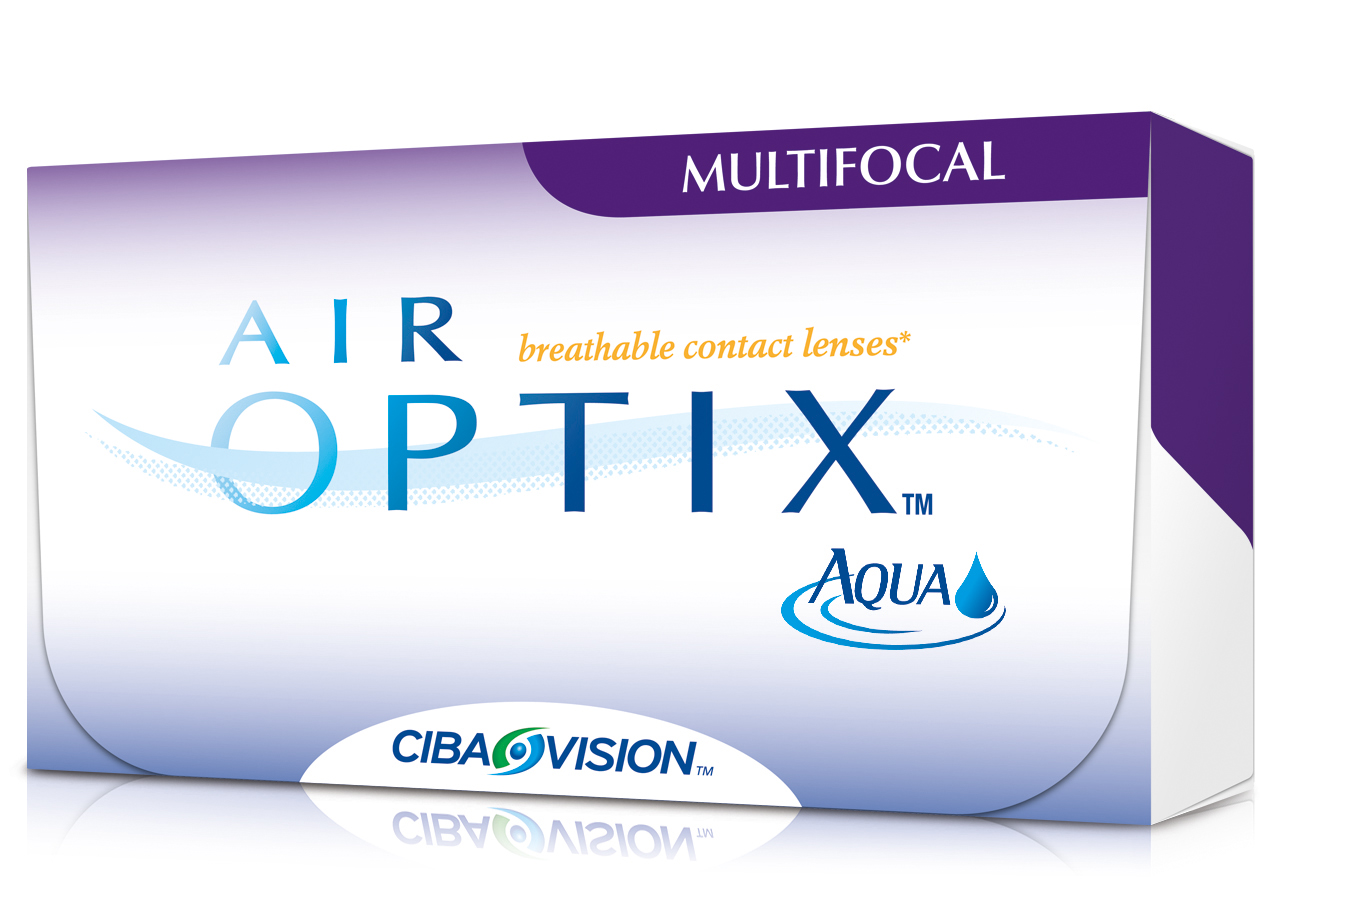 AIR OPTIX AQUA MULTIFOCAL 6pack